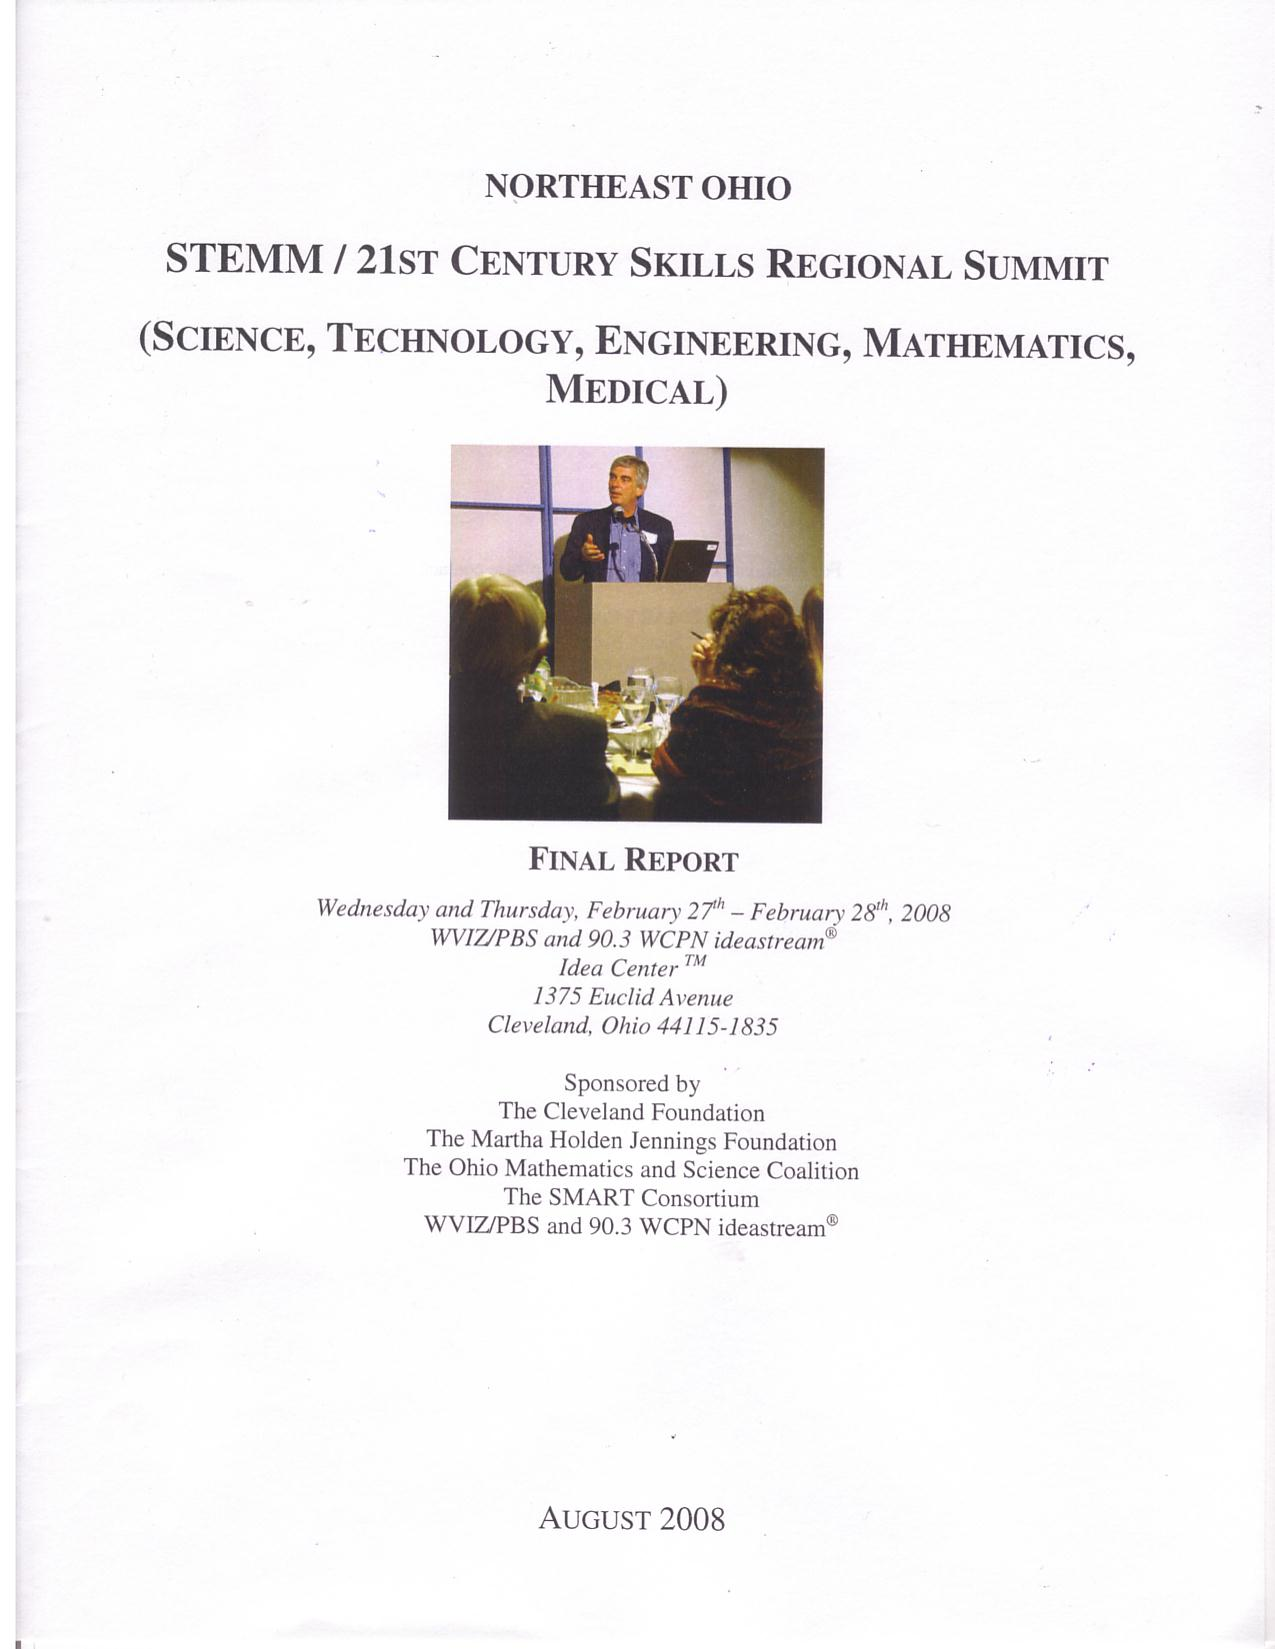 STEMM 2stC Skills Regional Summit, SMART Consortium, Aug 2008 - report of a two-day summit on Ohio K-12 science, math, engineering education